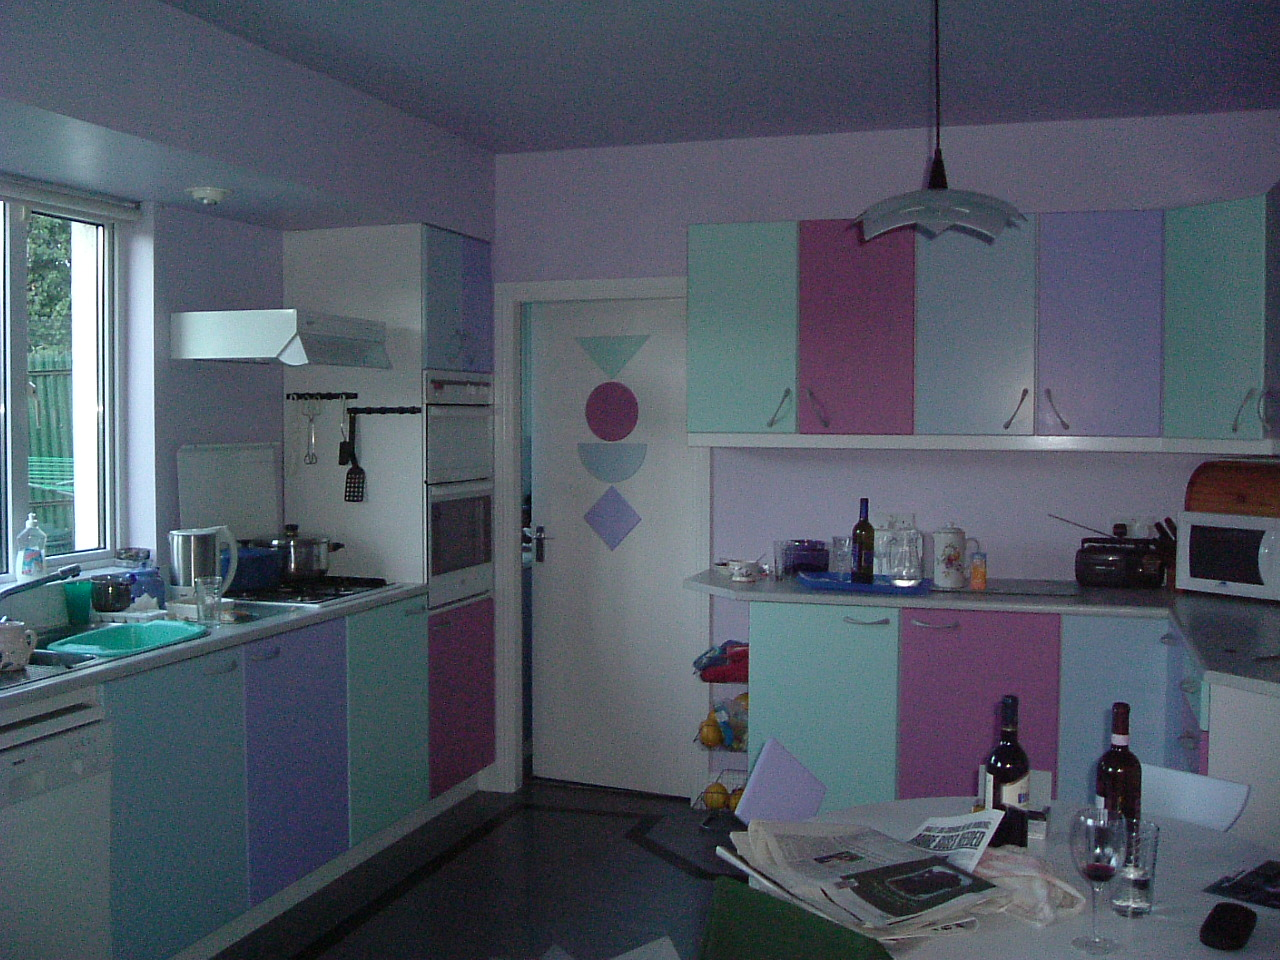 Looking for Blue Sky: The Gallery: A very colourful kitchen